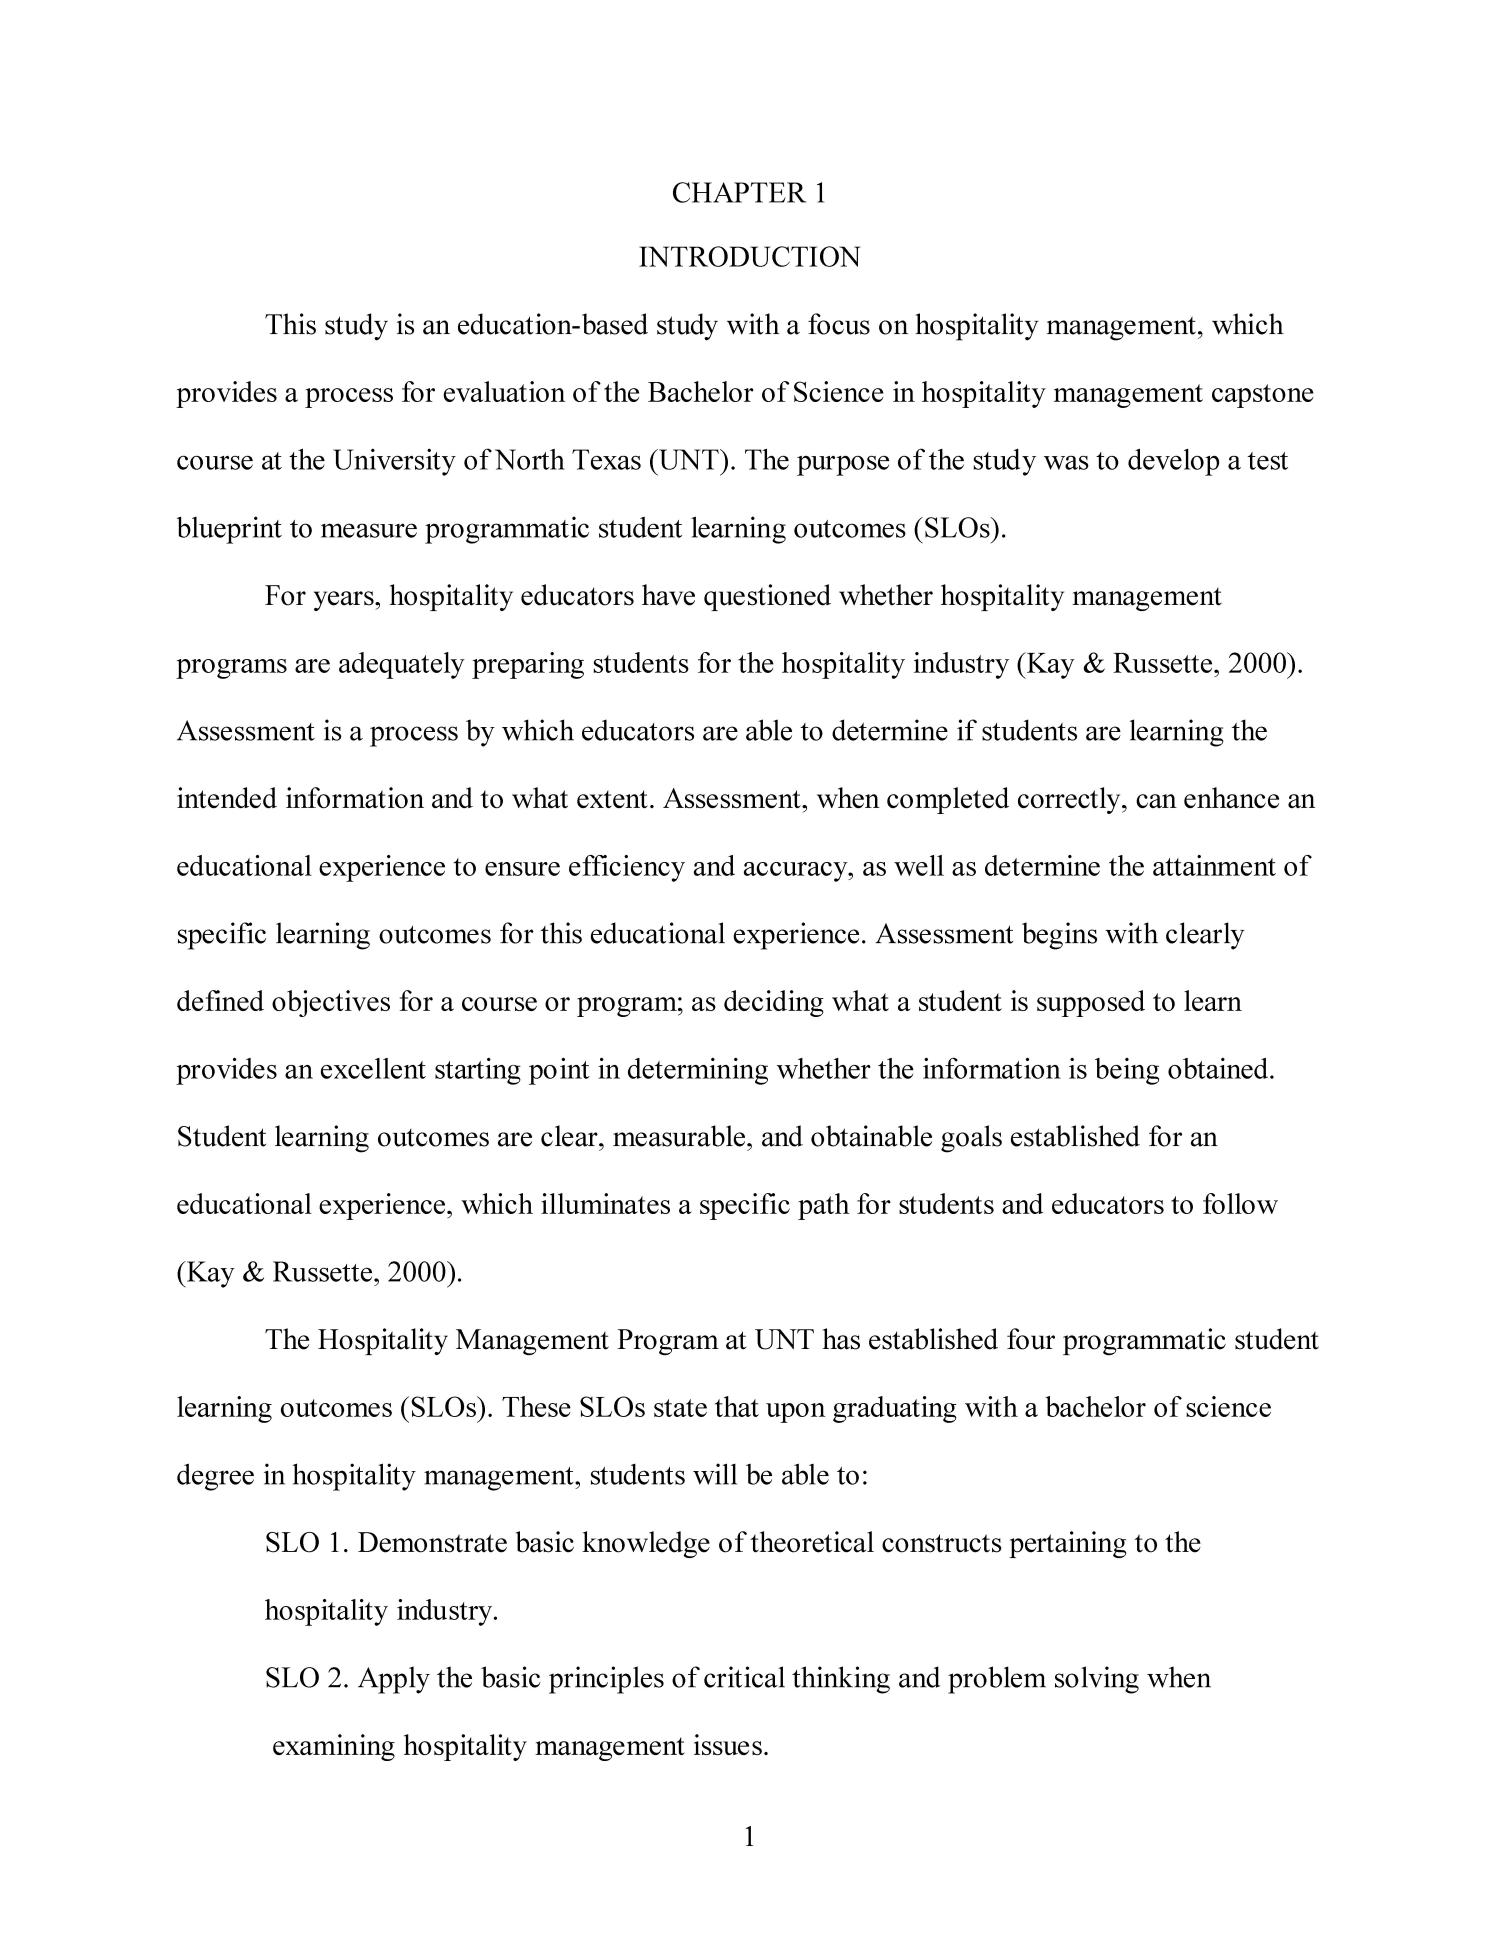 Development of a test blueprint for a hospitality management development of a test blueprint for a hospitality management capstone course to measure programmatic student learning outcomes page 1 digital library malvernweather Image collections